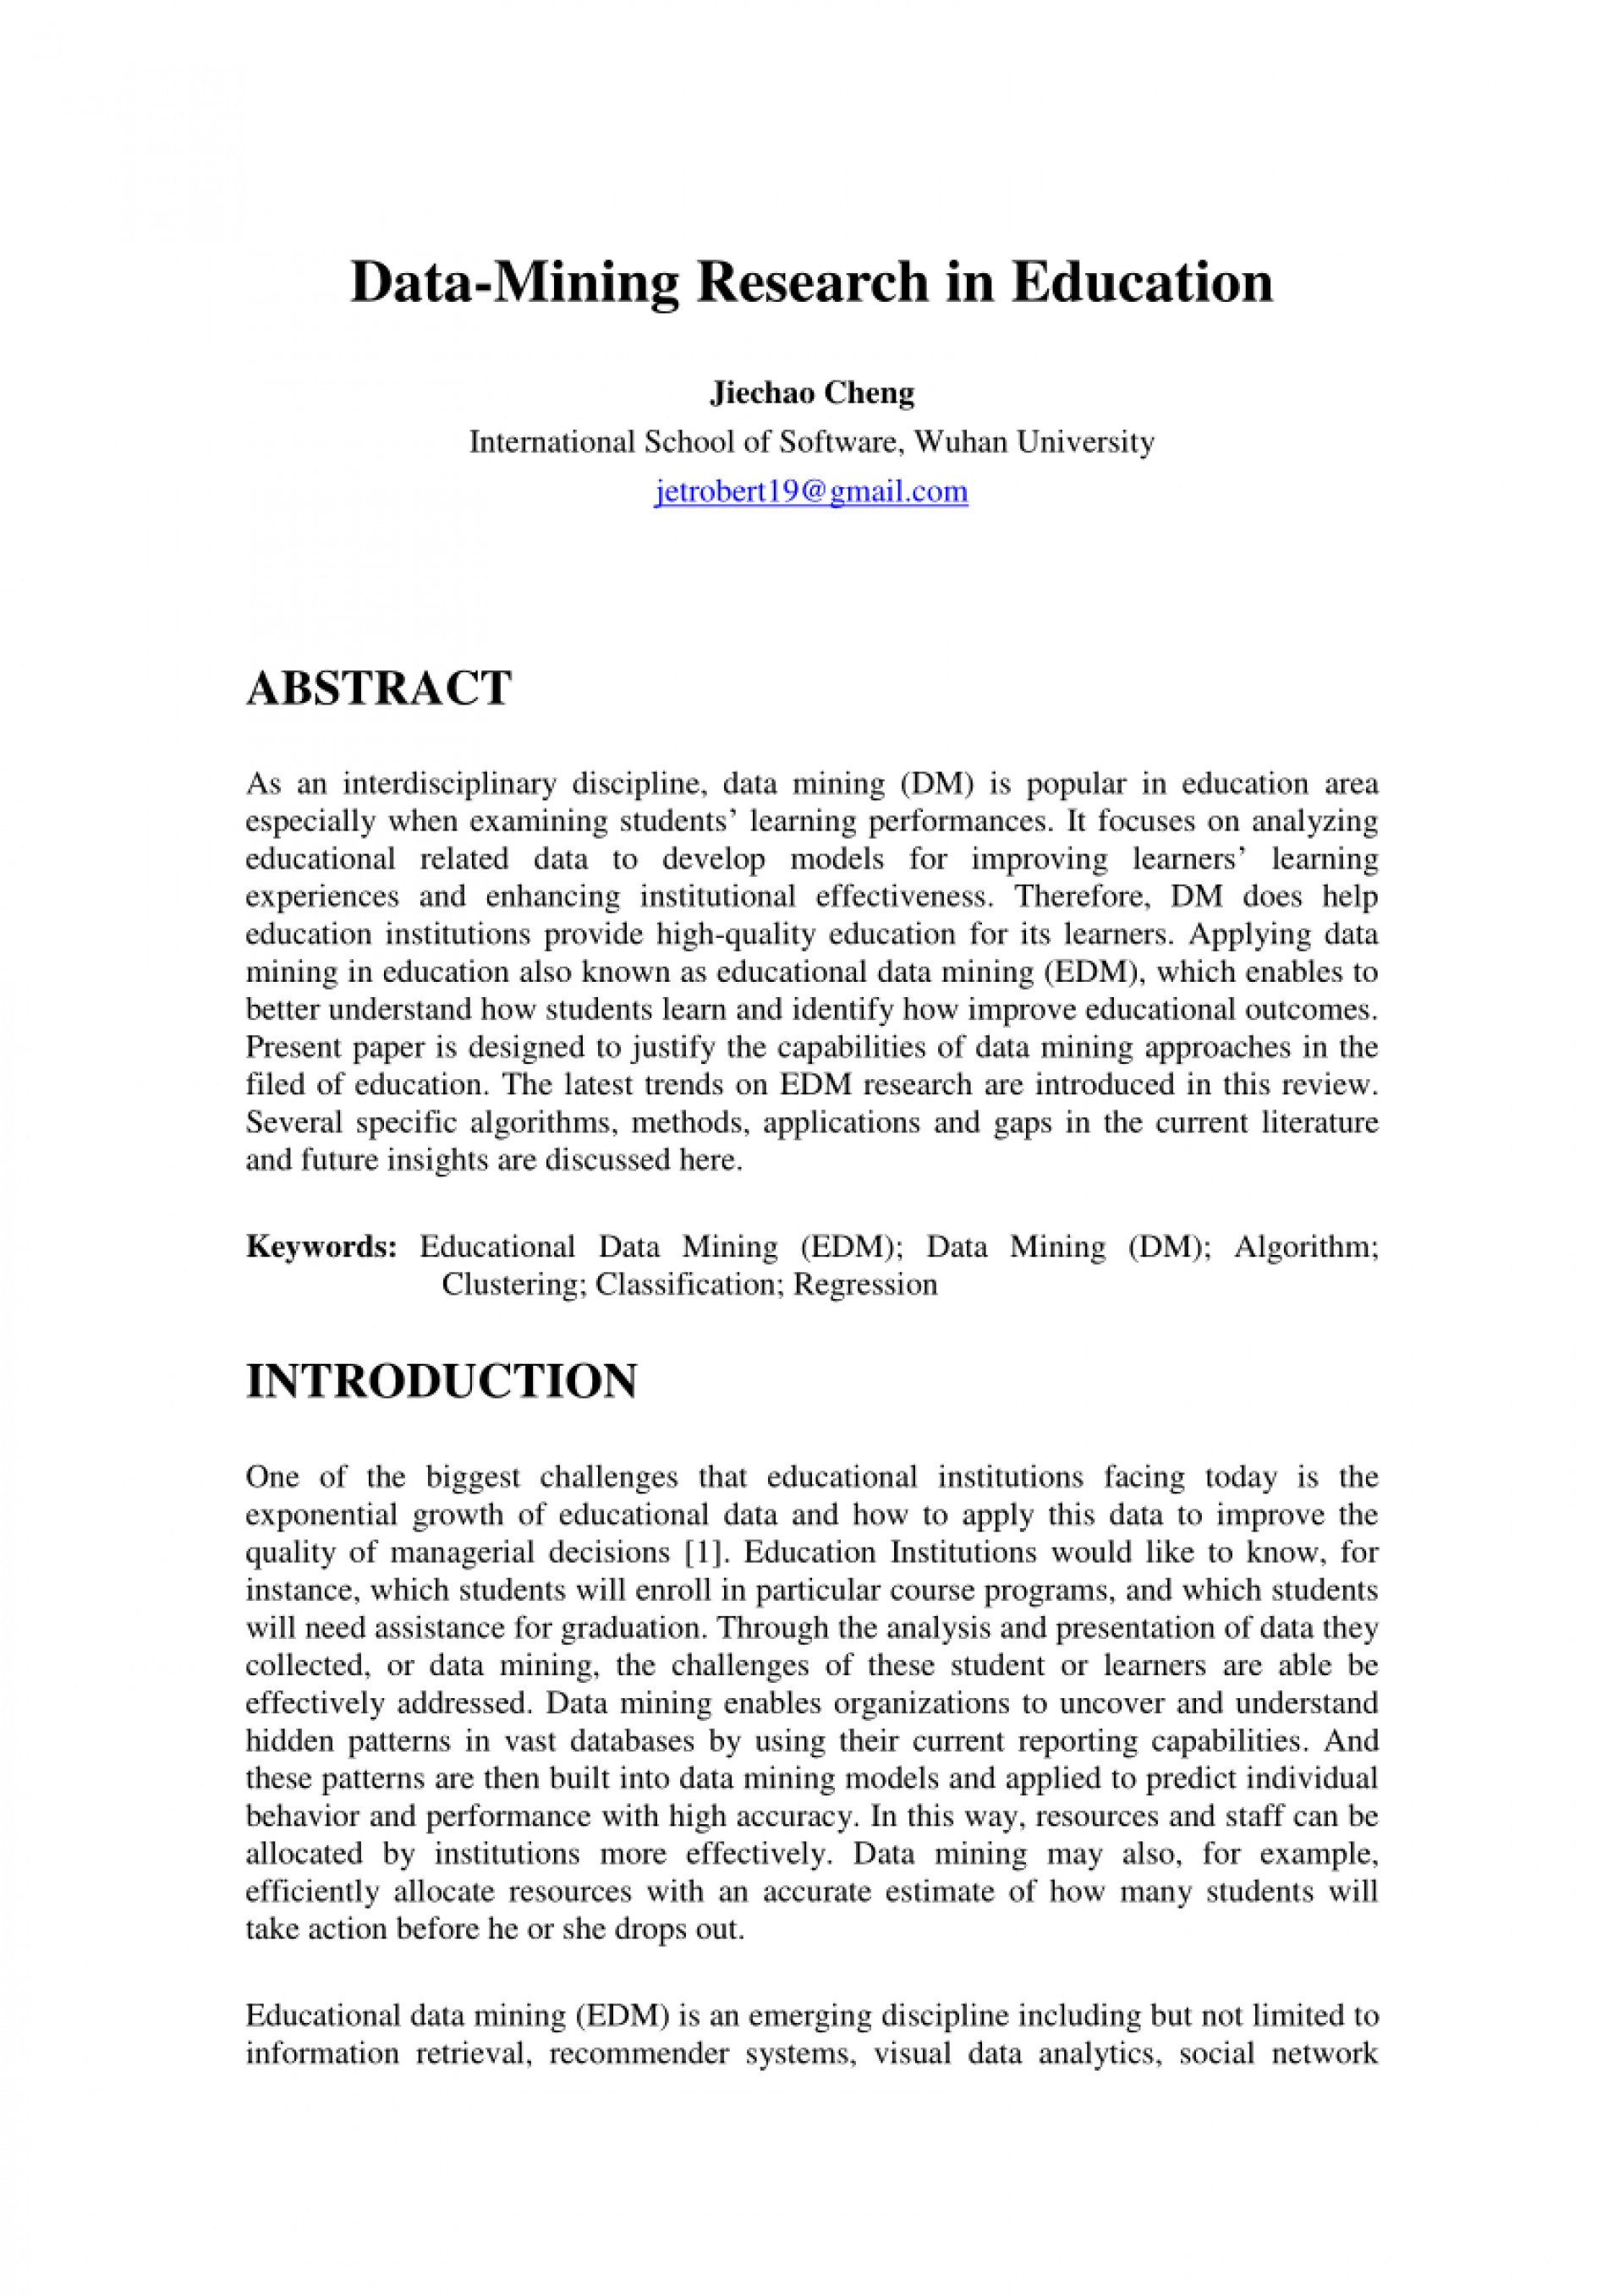 002 Research Paper Largepreview Education Beautiful Papers Special Free On Higher Loan 1920